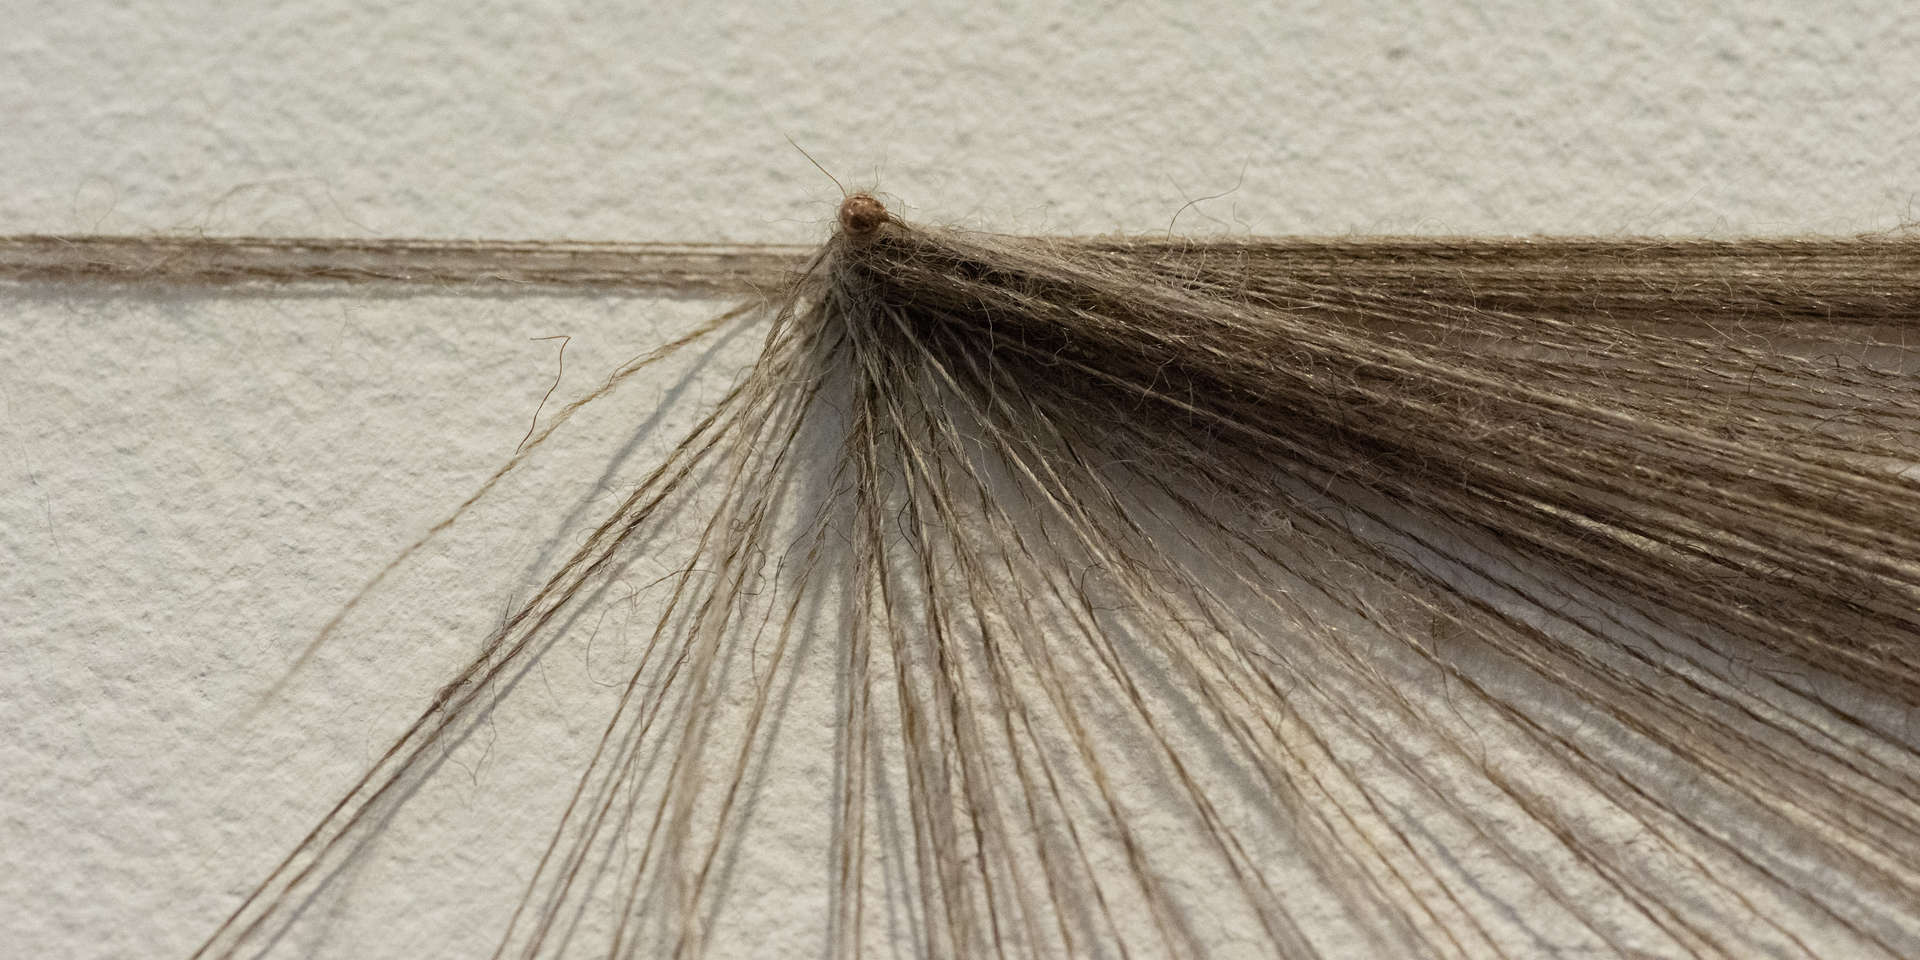 Strands of Thought, (detail2); nails, wool, tags, clips, digital imagery; 430x240cm; photo A Thompson; Fiona Percy 2018